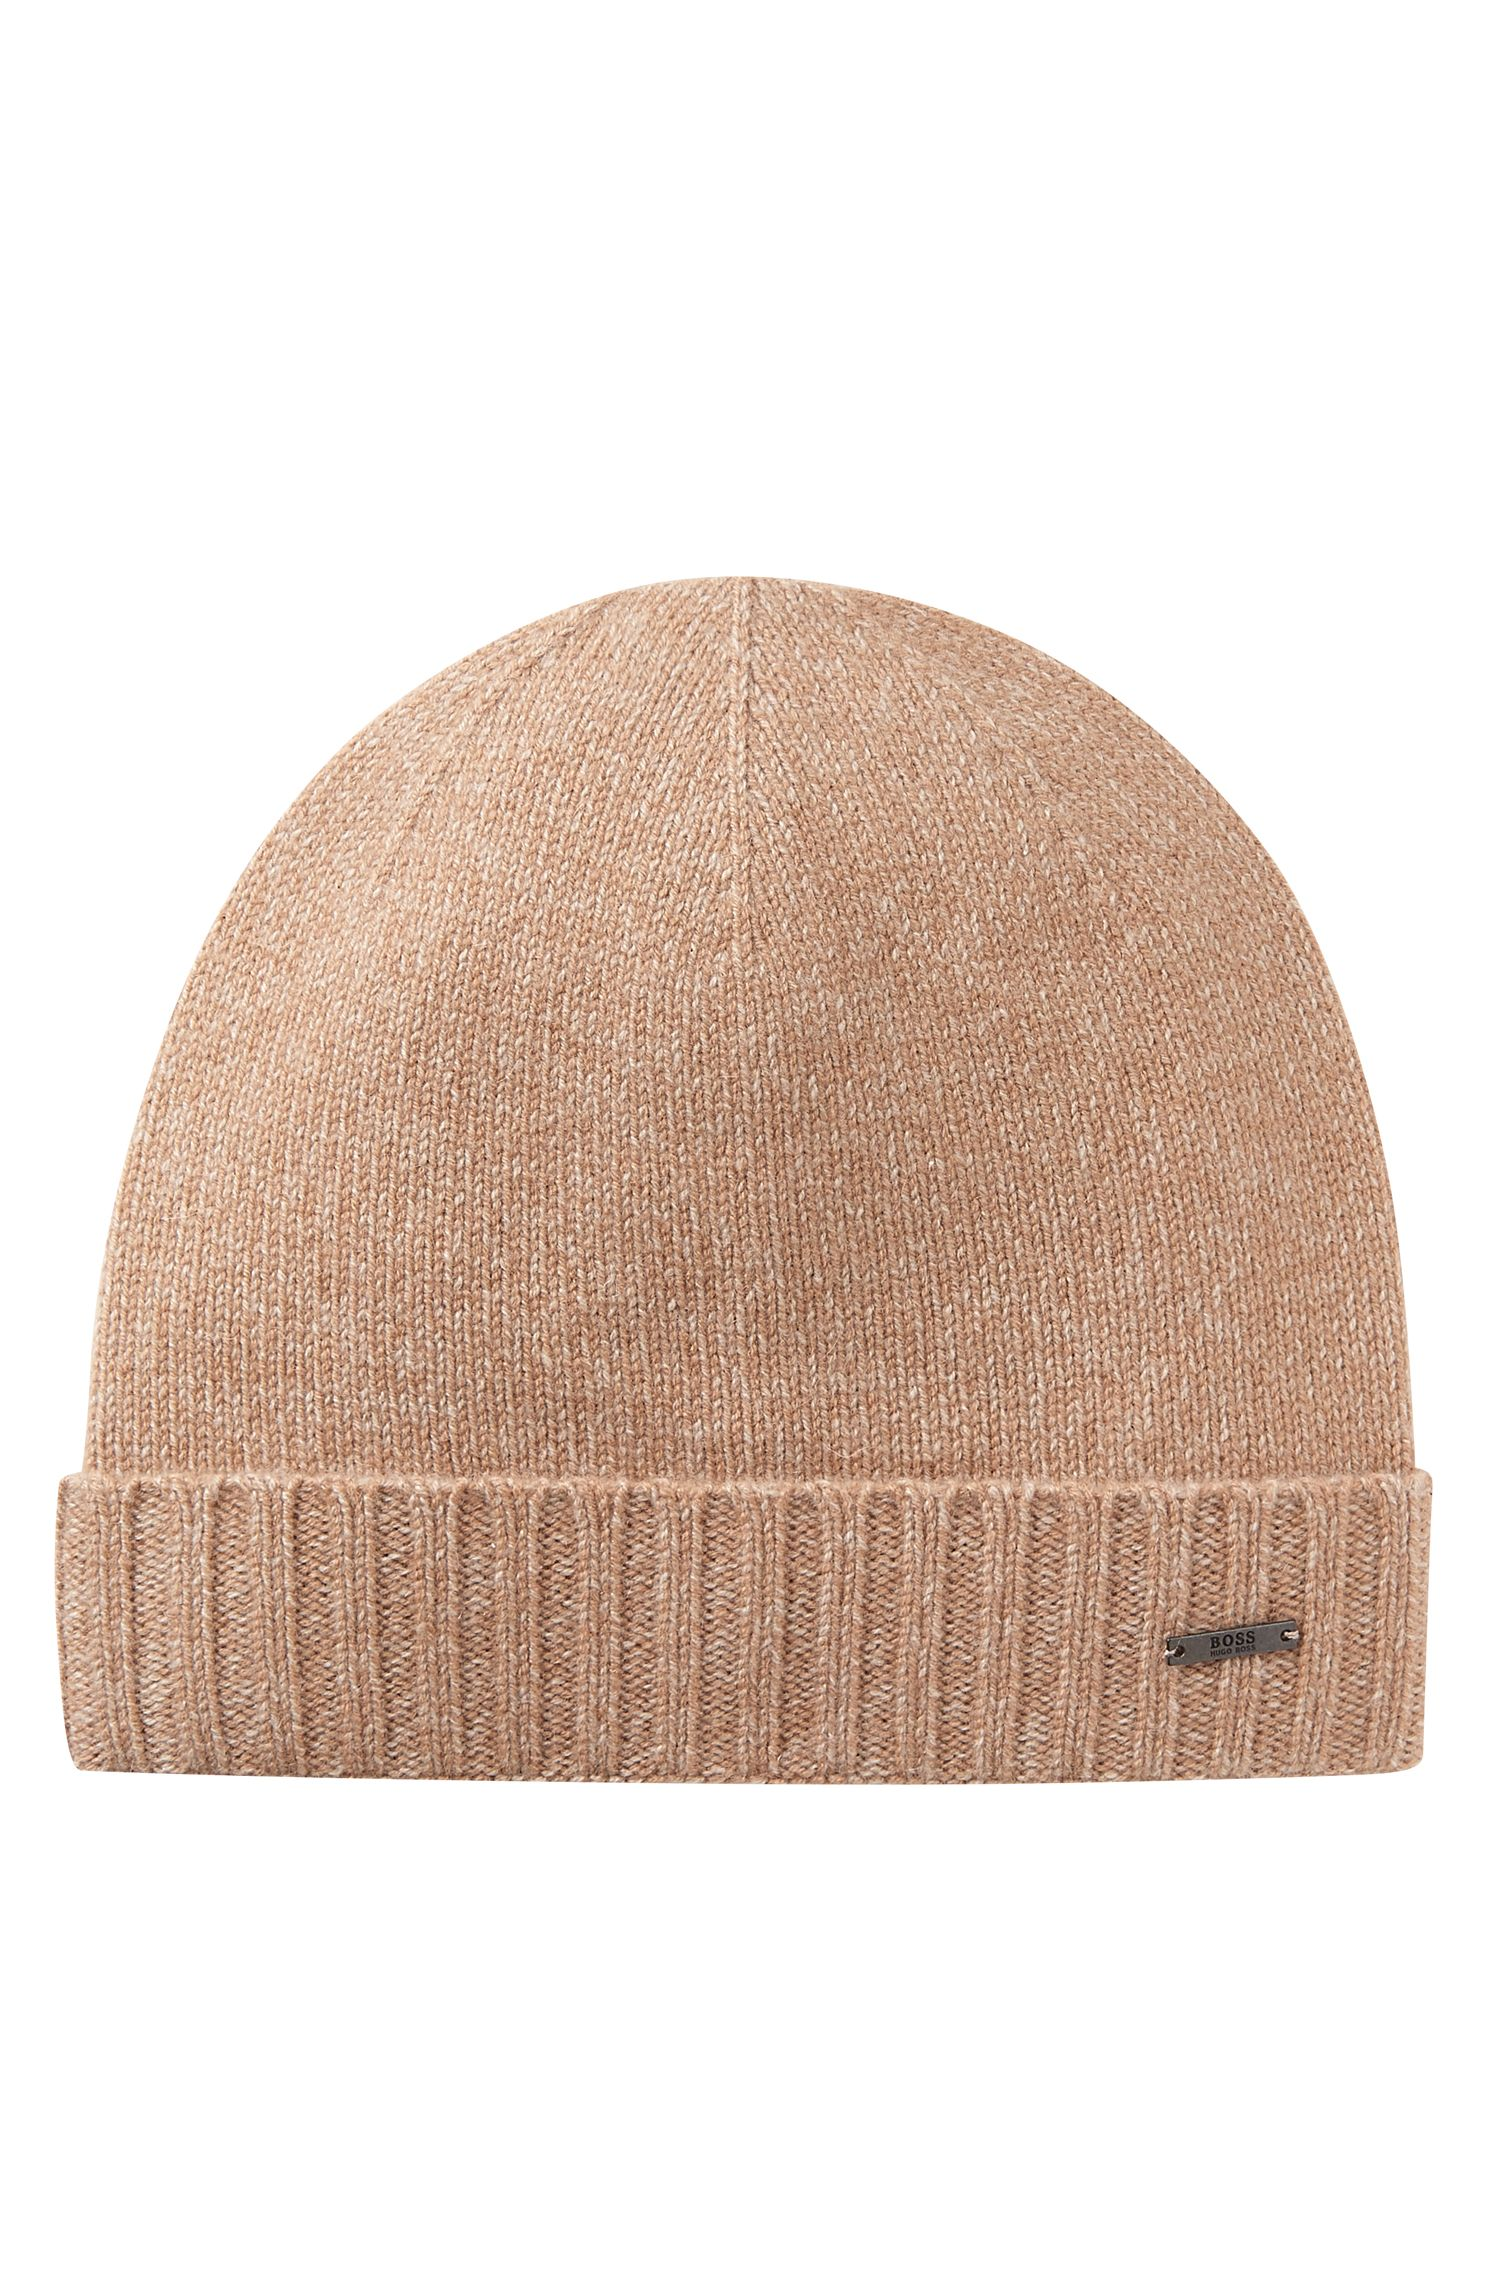 Beanie hat in mouliné cashmere